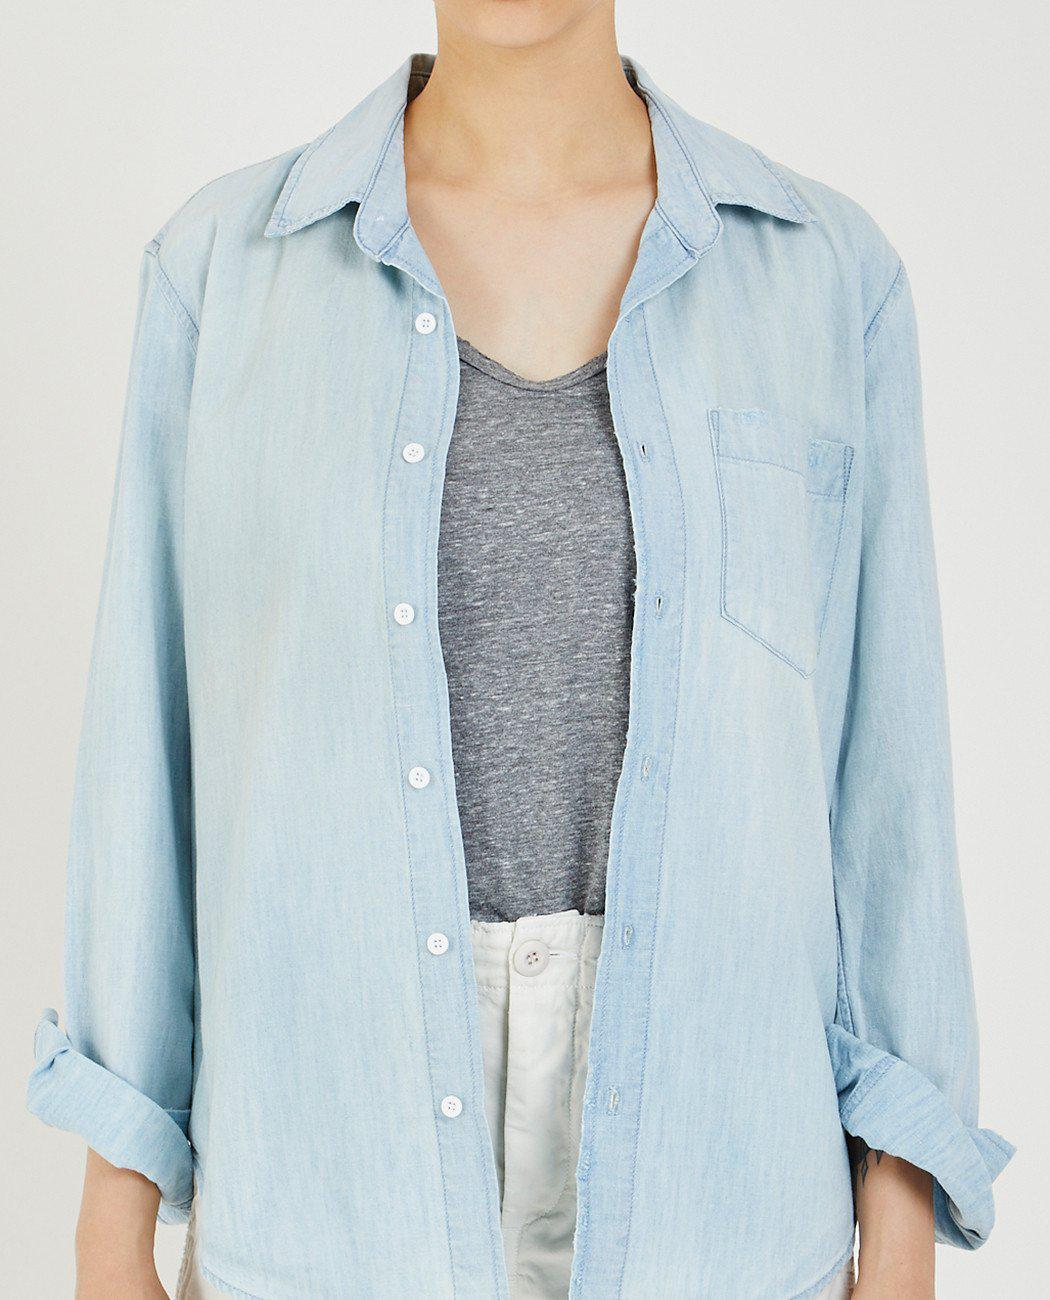 Amo Woman Prep Distressed Cotton-chambray Shirt Light Denim Size S Amo Cheapest Price For Sale Best Wholesale Sale Wholesale Price Best Prices For Sale zMy6hNp2a